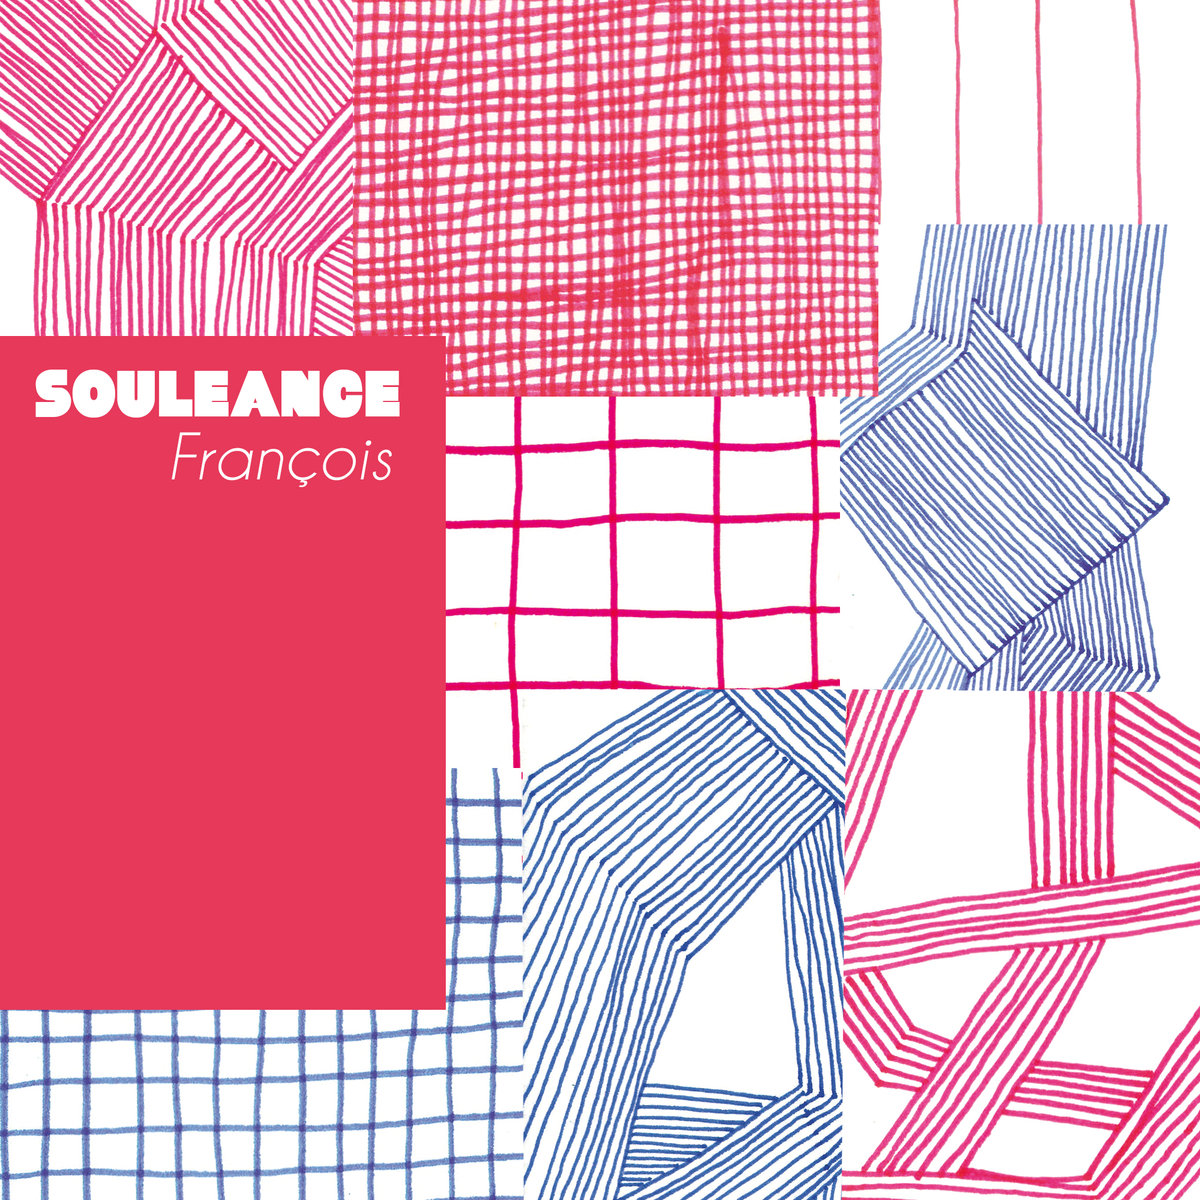 Souleance-Francois-Sete-Vinyl-First-Word-Records